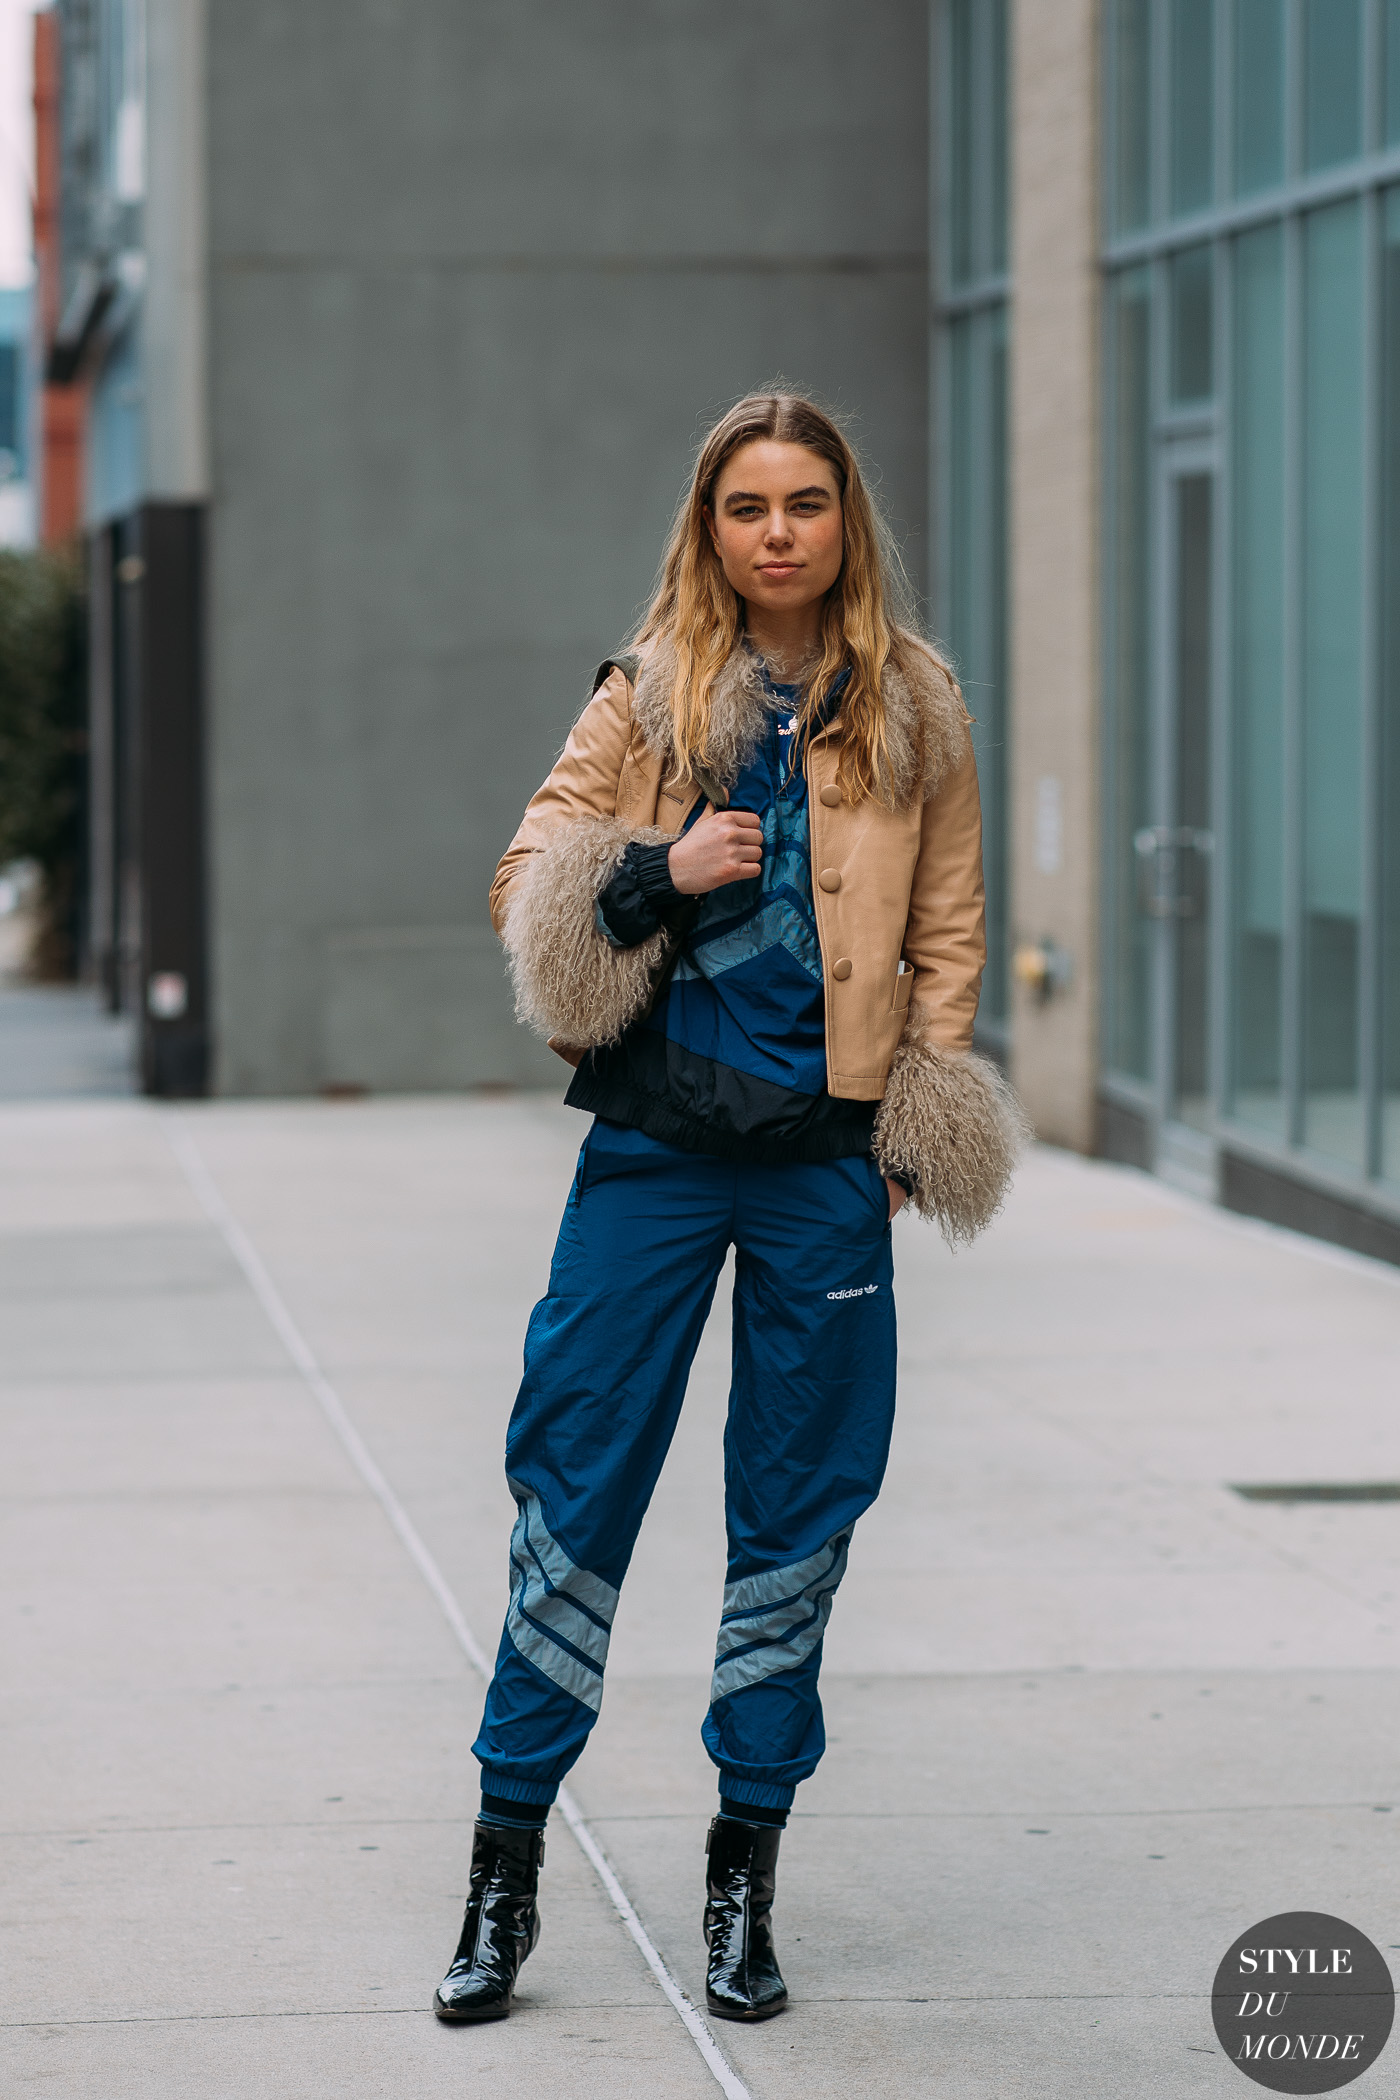 Laura-Maria Wulff by STYLEDUMONDE Street Style Fashion Photography NY FW18 20180210_48A4504